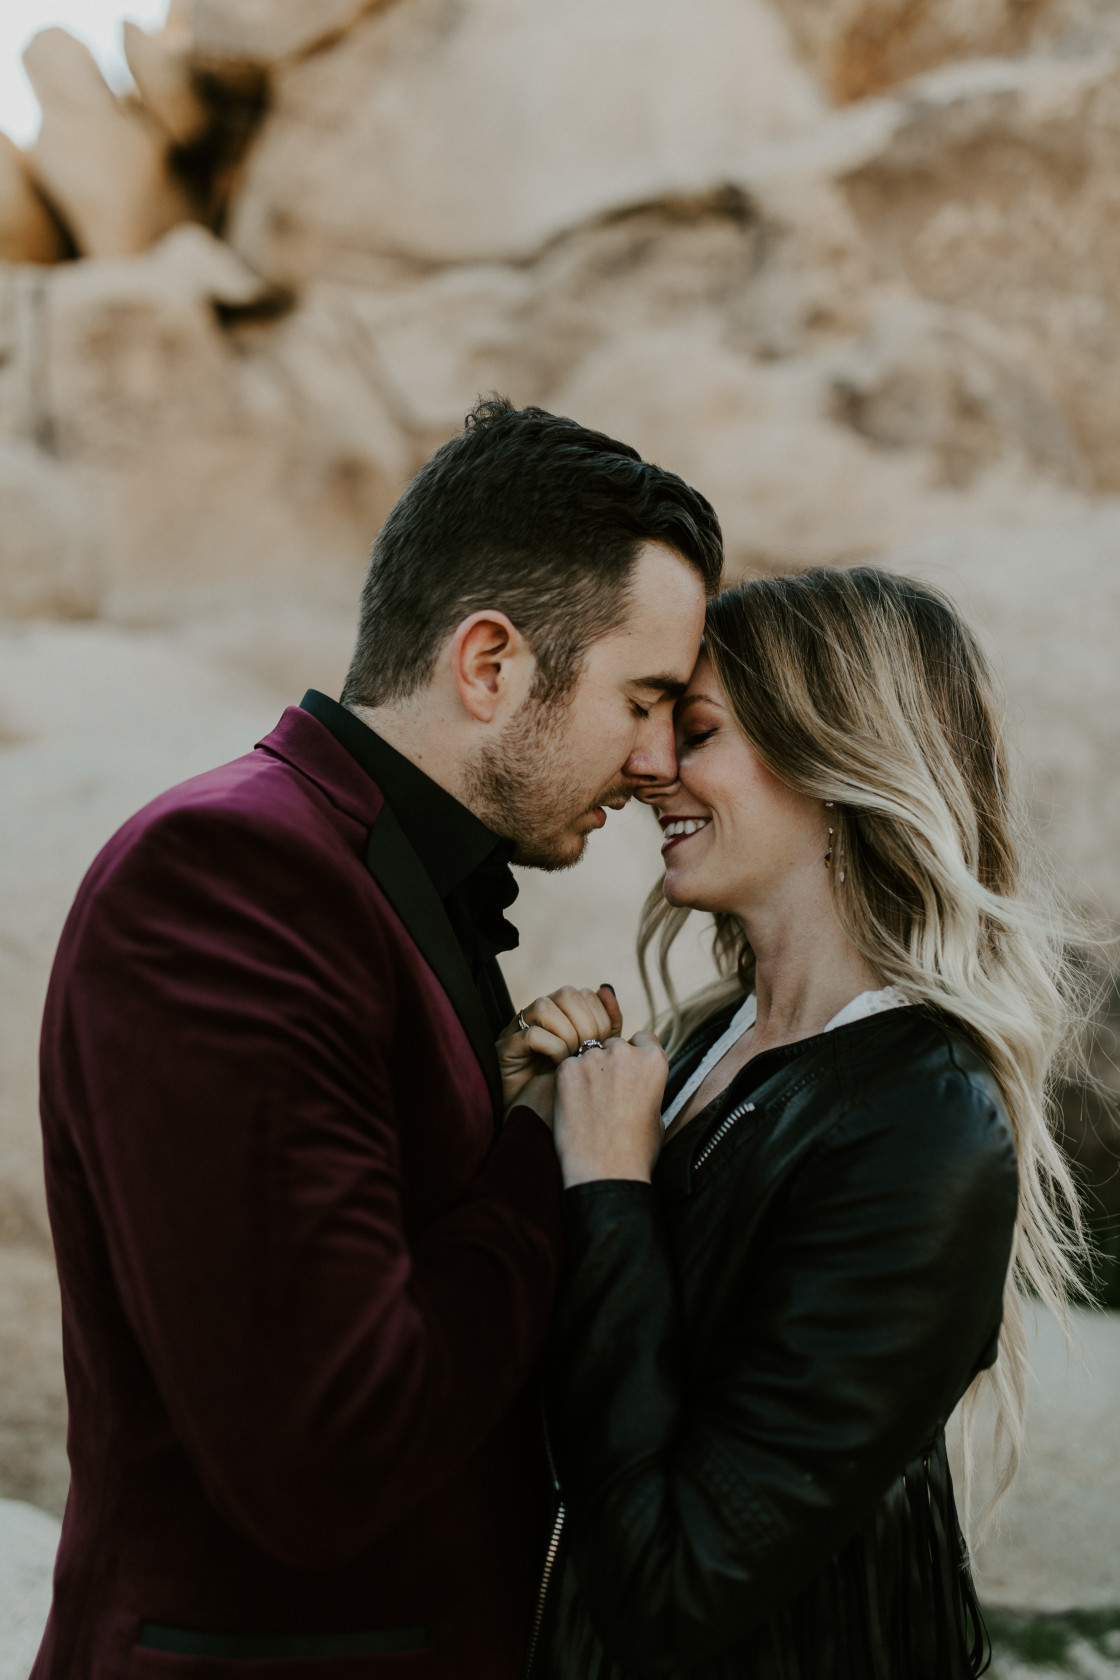 Alyssa and Jeremy go in for a kiss. Elopement wedding photography at Joshua Tree National Park by Sienna Plus Josh.